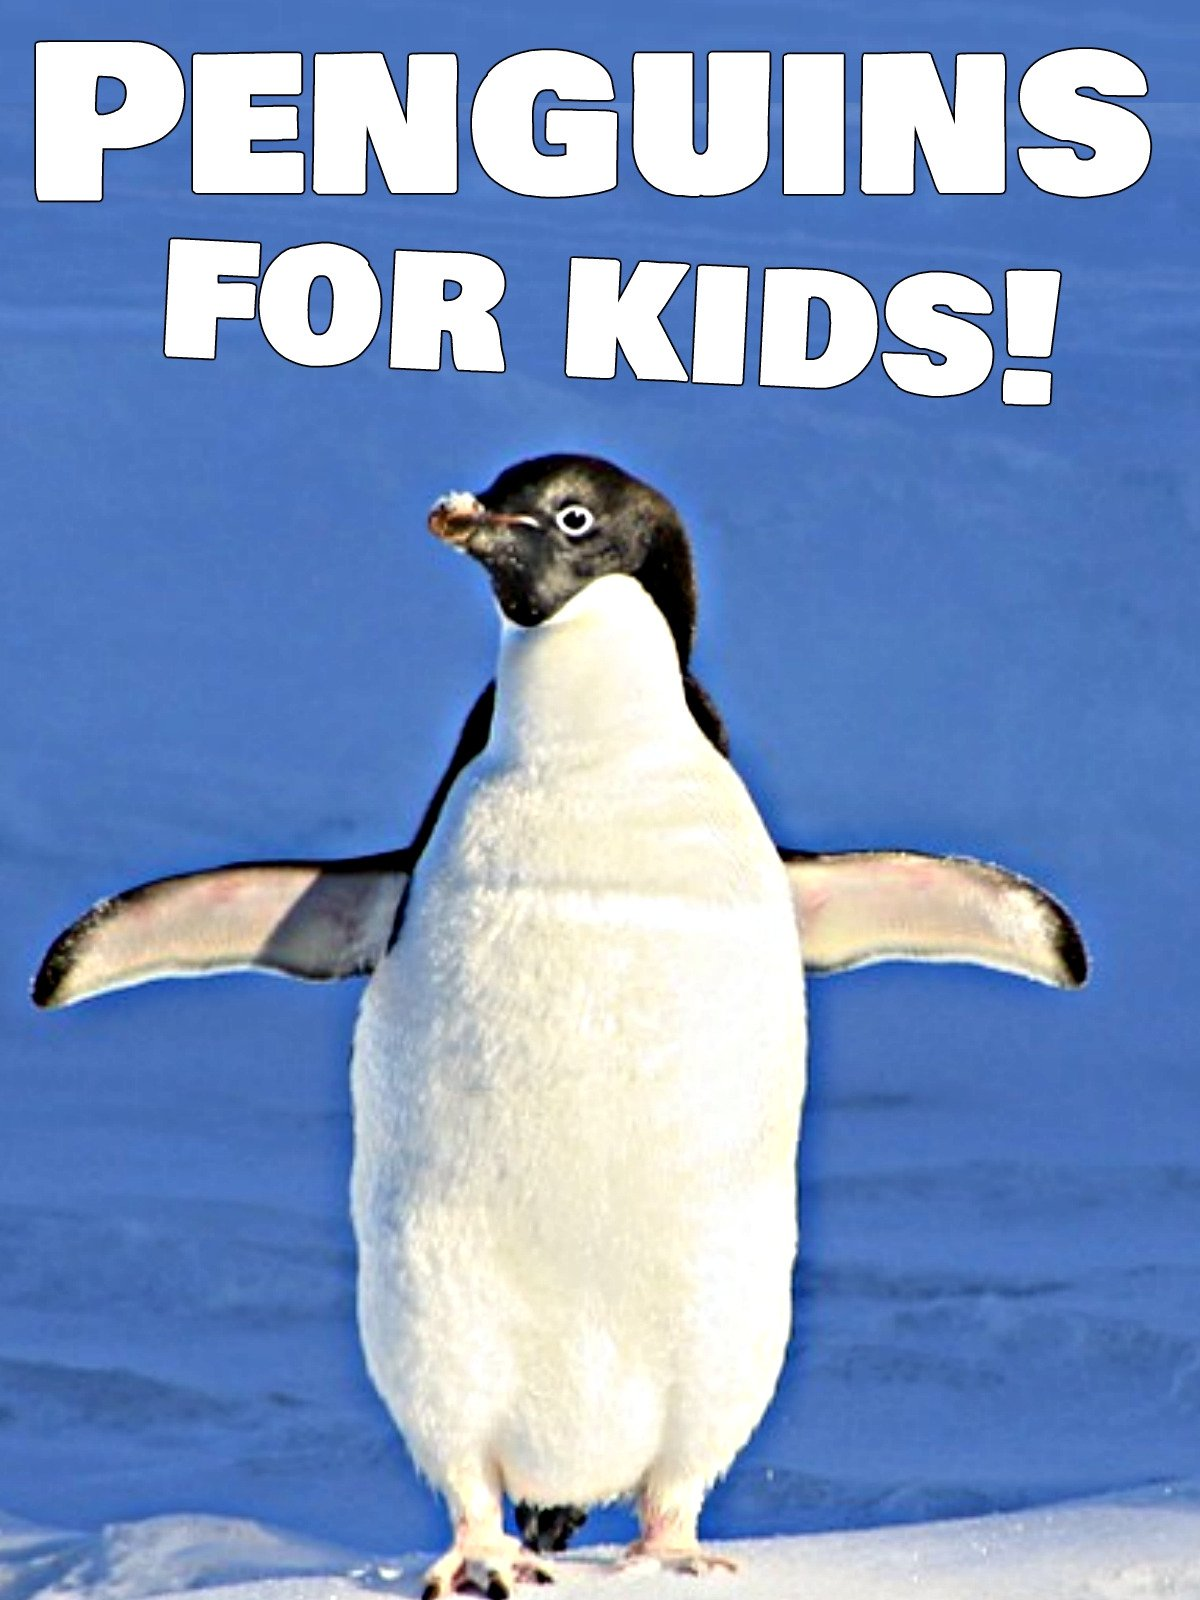 Penguins for Kids!